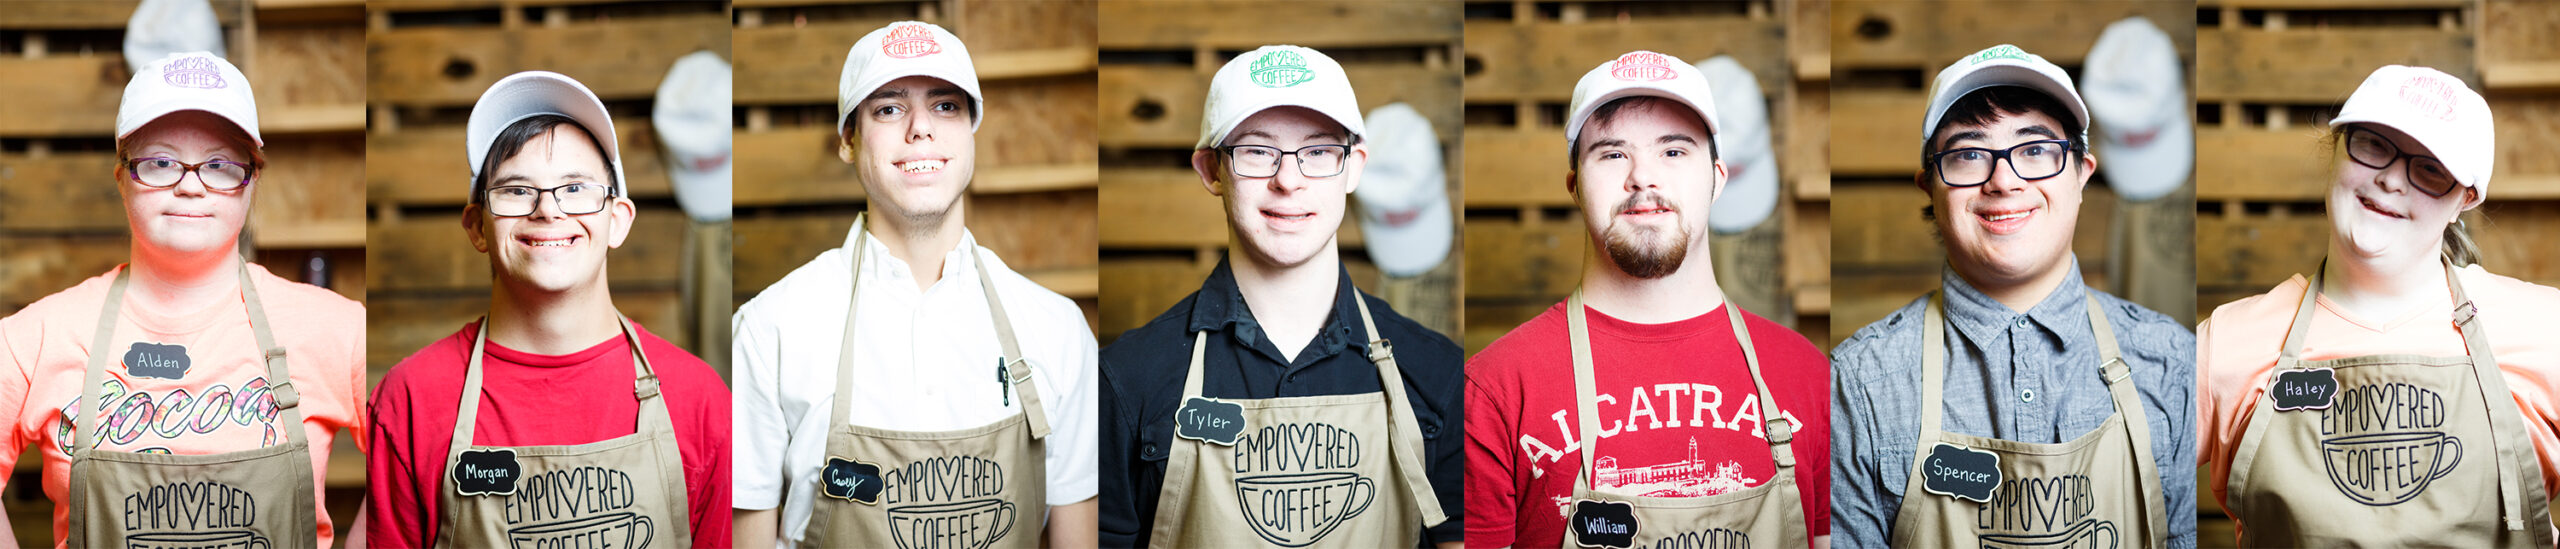 IDD Employees at Empowered Coffee